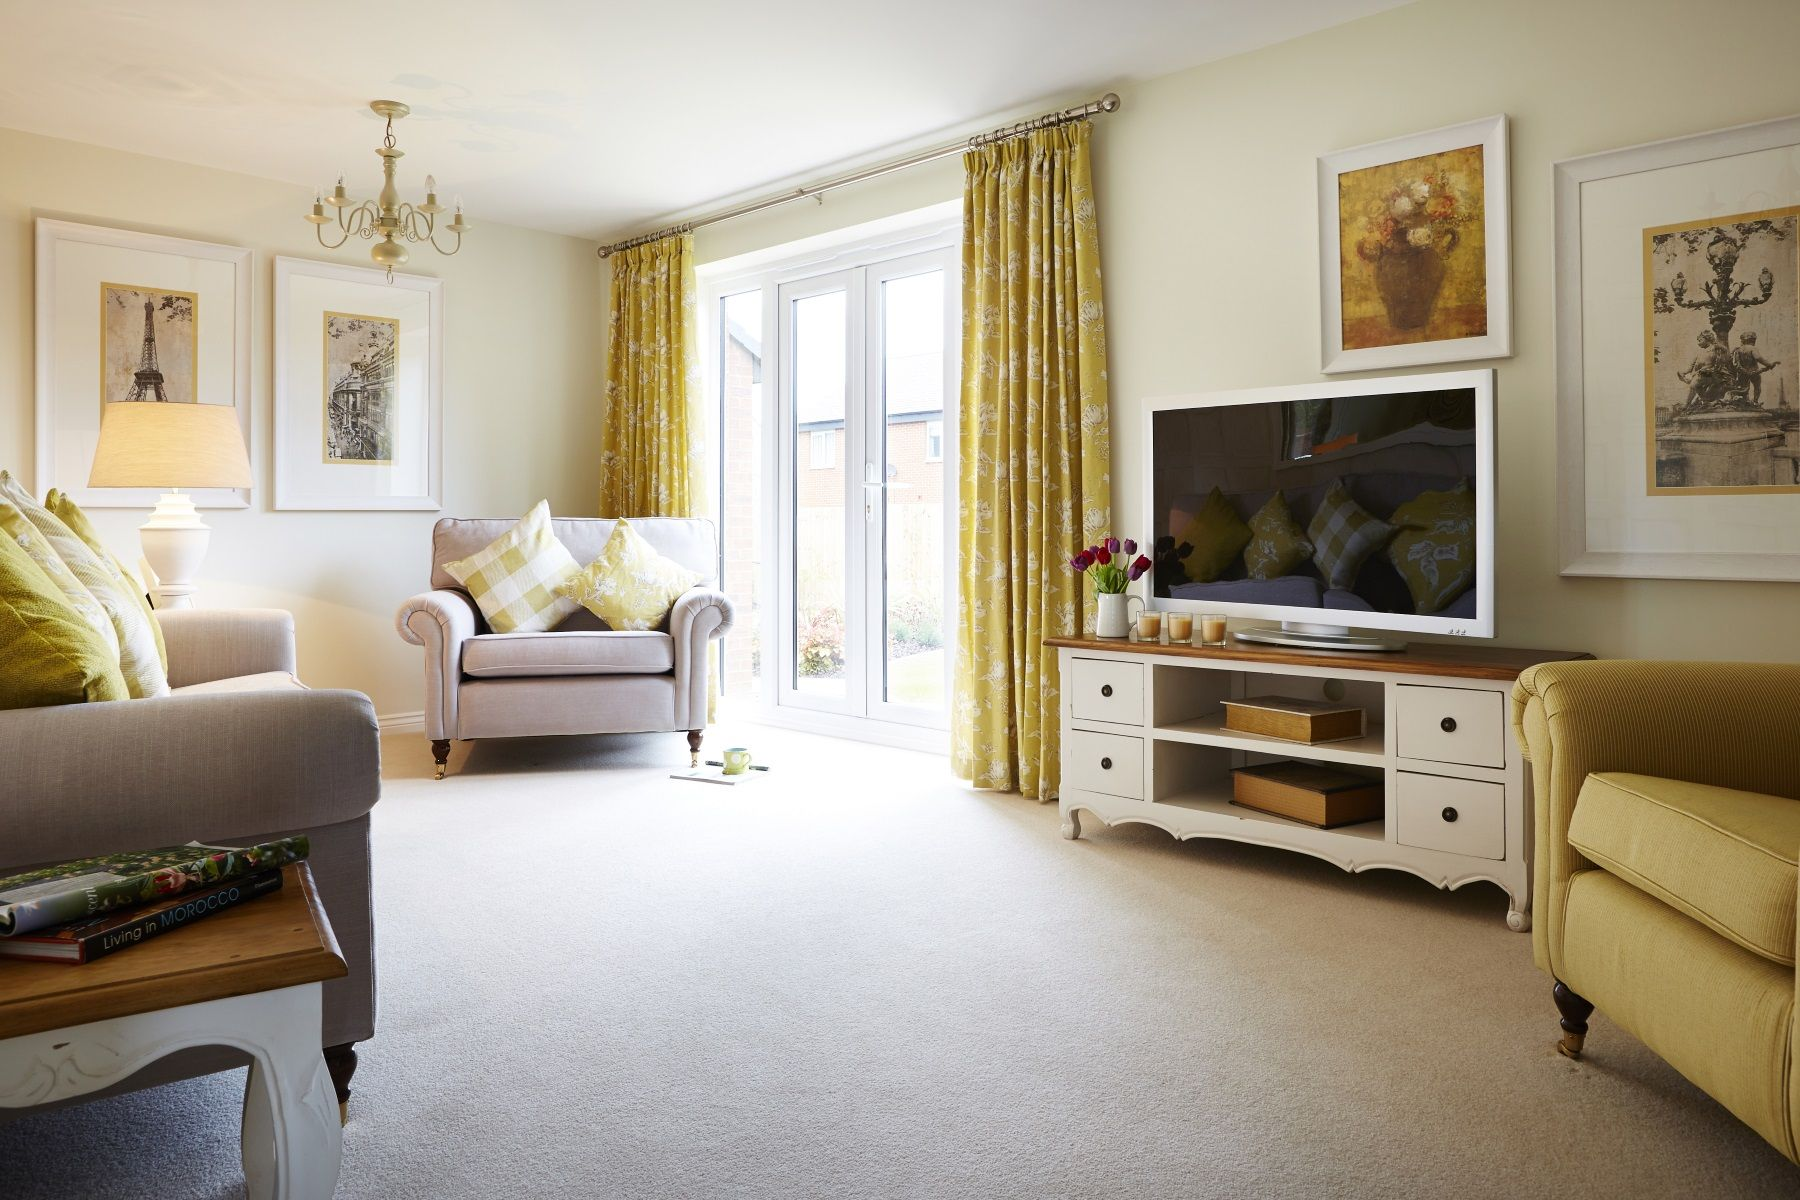 TW Exeter - Buckingham Heights - Trusdale example living room